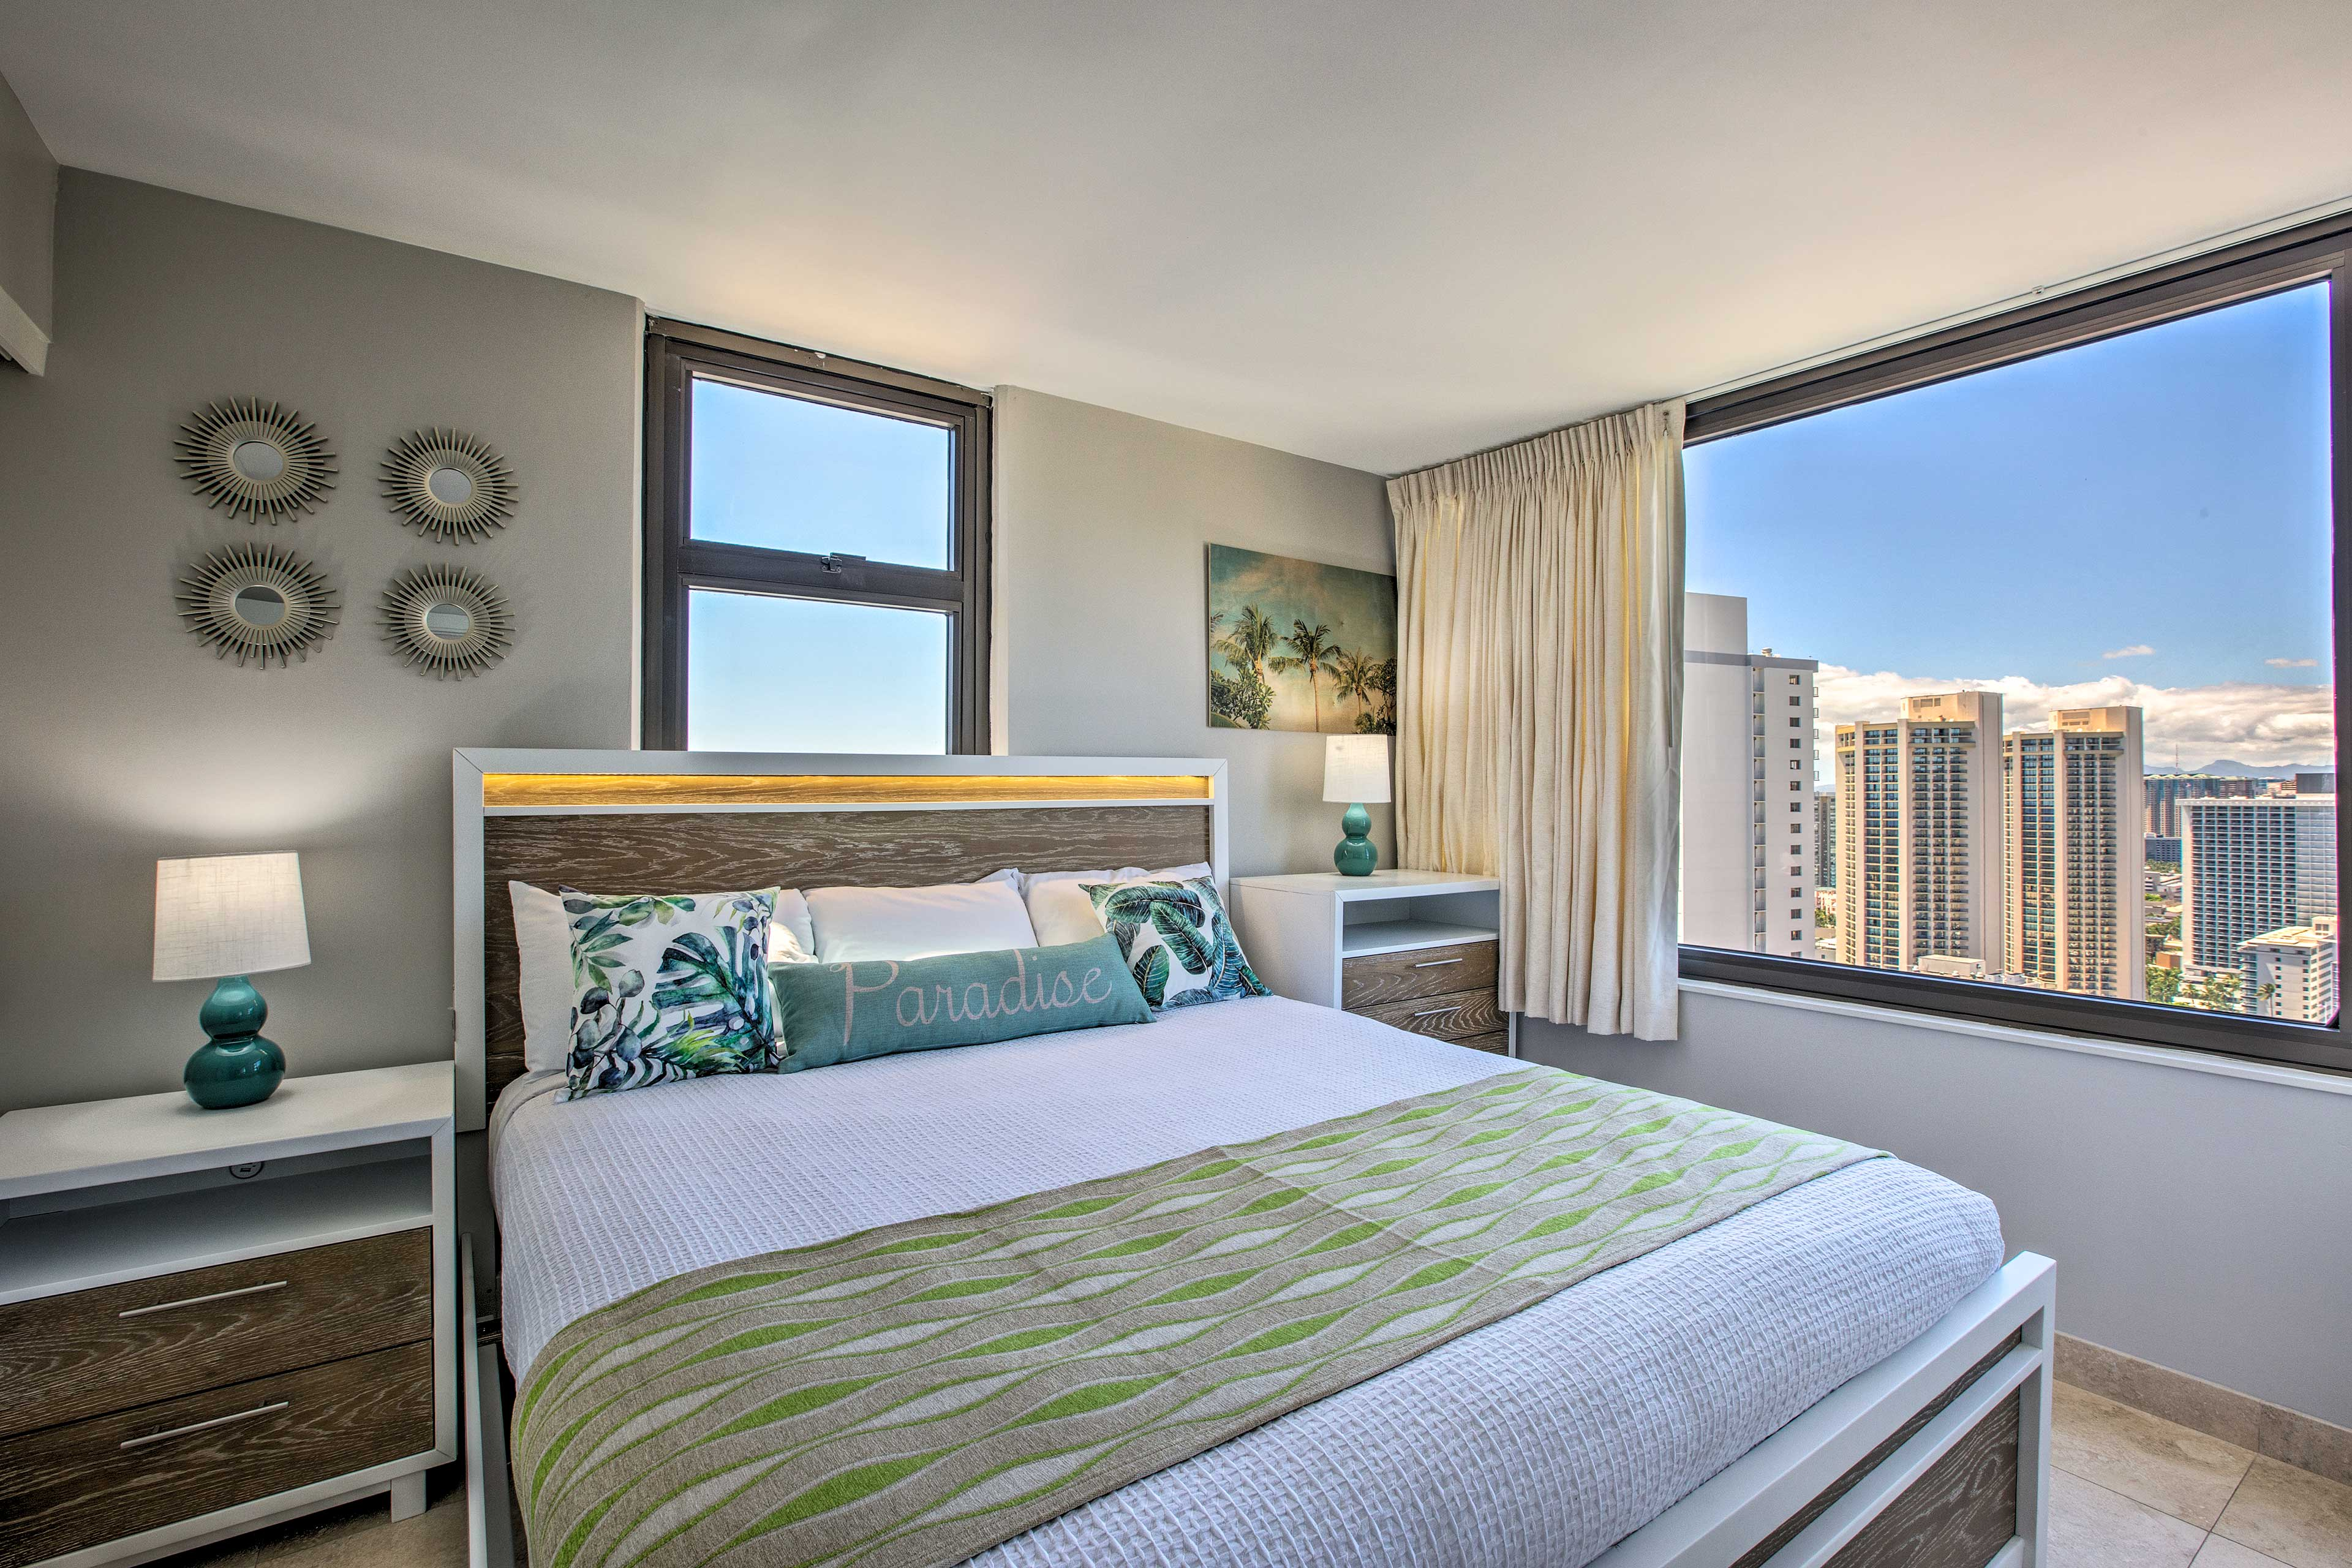 In the bedroom, you'll find a plush king-sized bed.